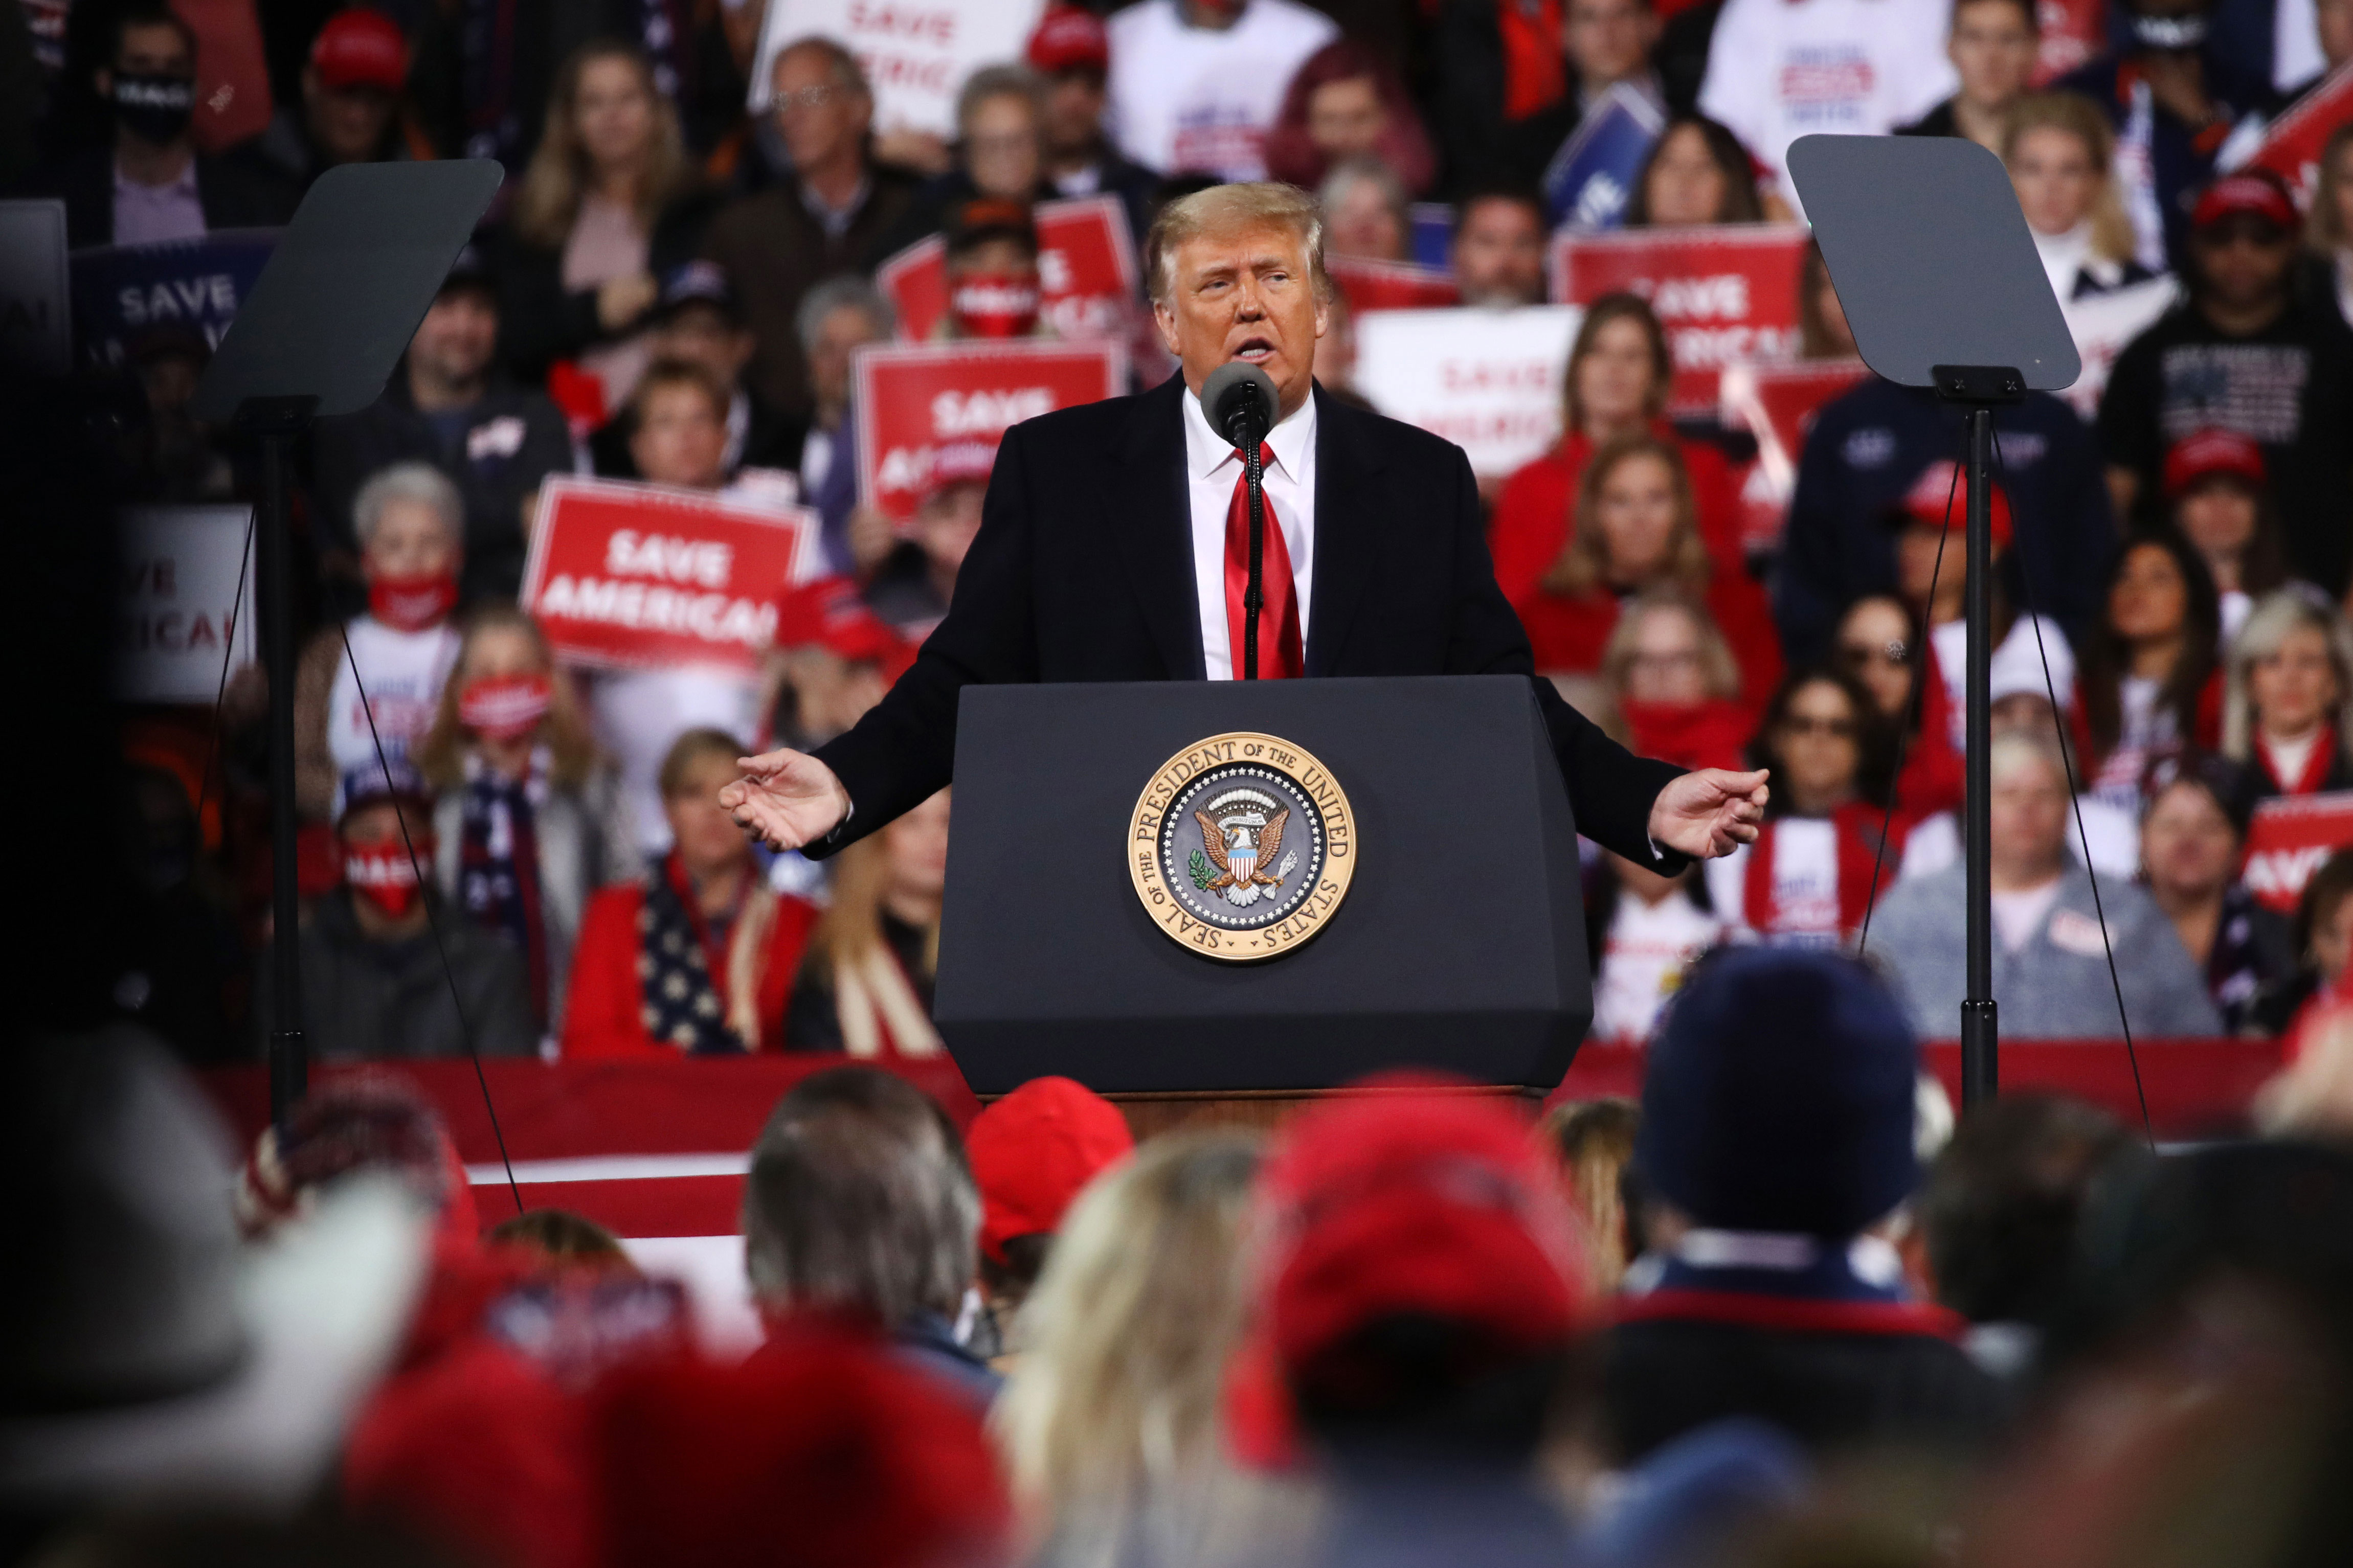 President Donald Trump attends a rally in support of Sens. David Perdue and Kelly Loeffler in Valdosta, Georgia, on December 5.